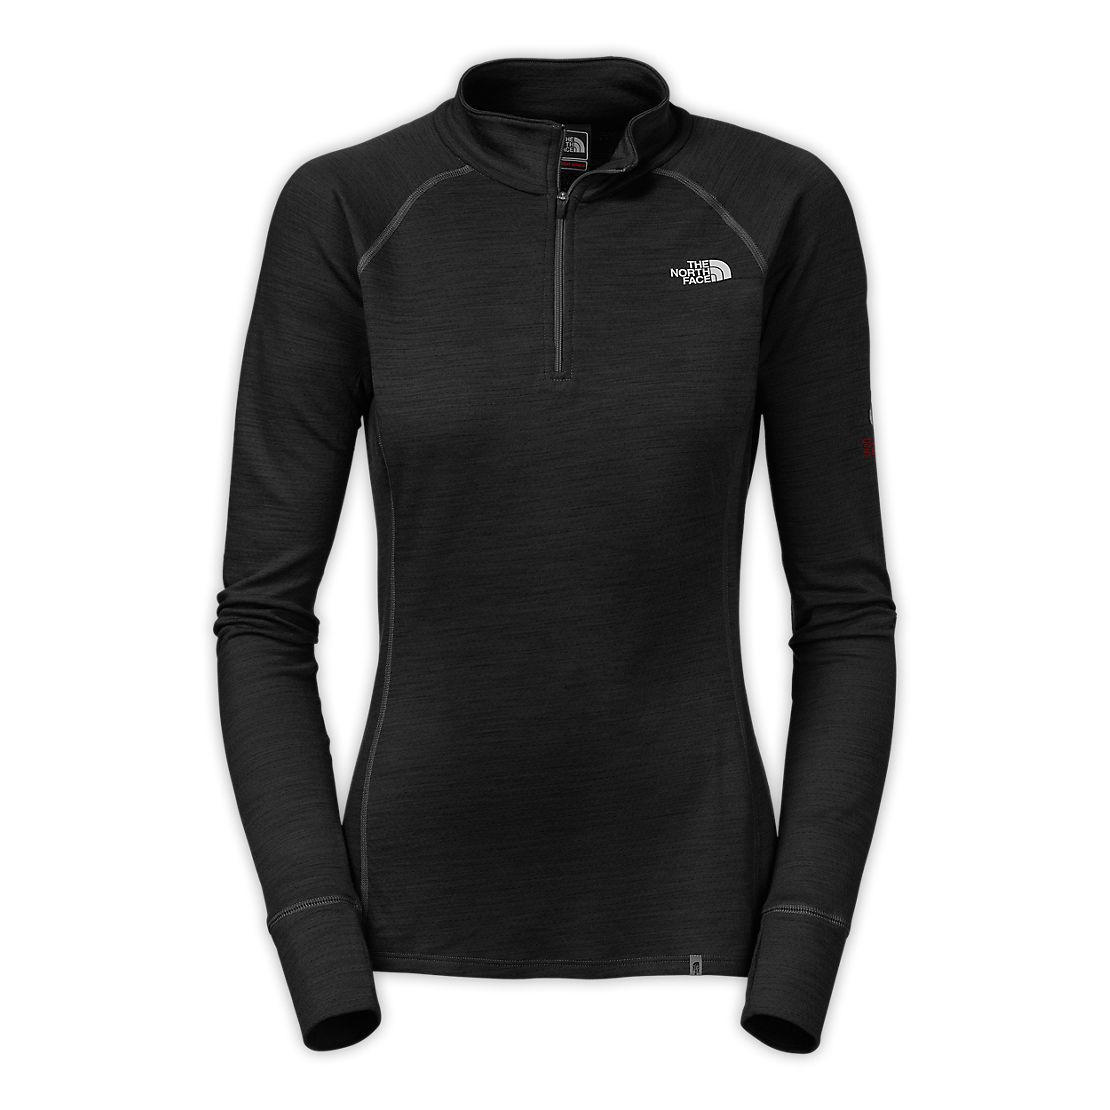 The North Face Women's Shirts & Sweaters WOMEN'S WARM MERINO ZIP NECK